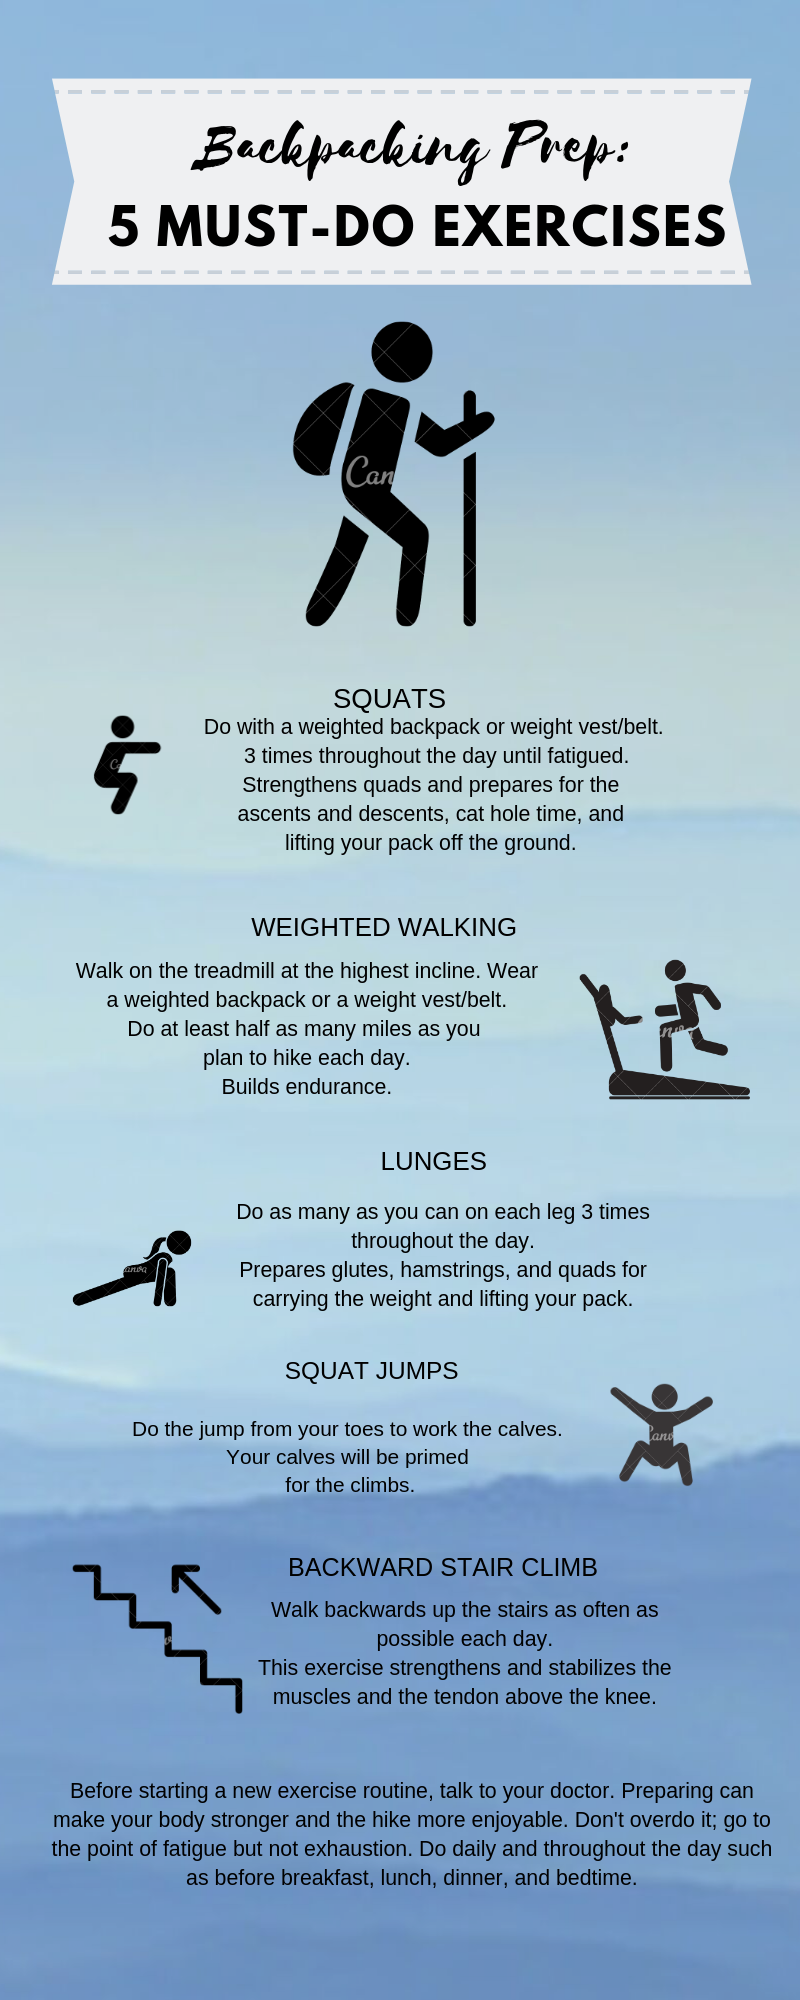 Backpacking Prep: 5 Must-do Exercises